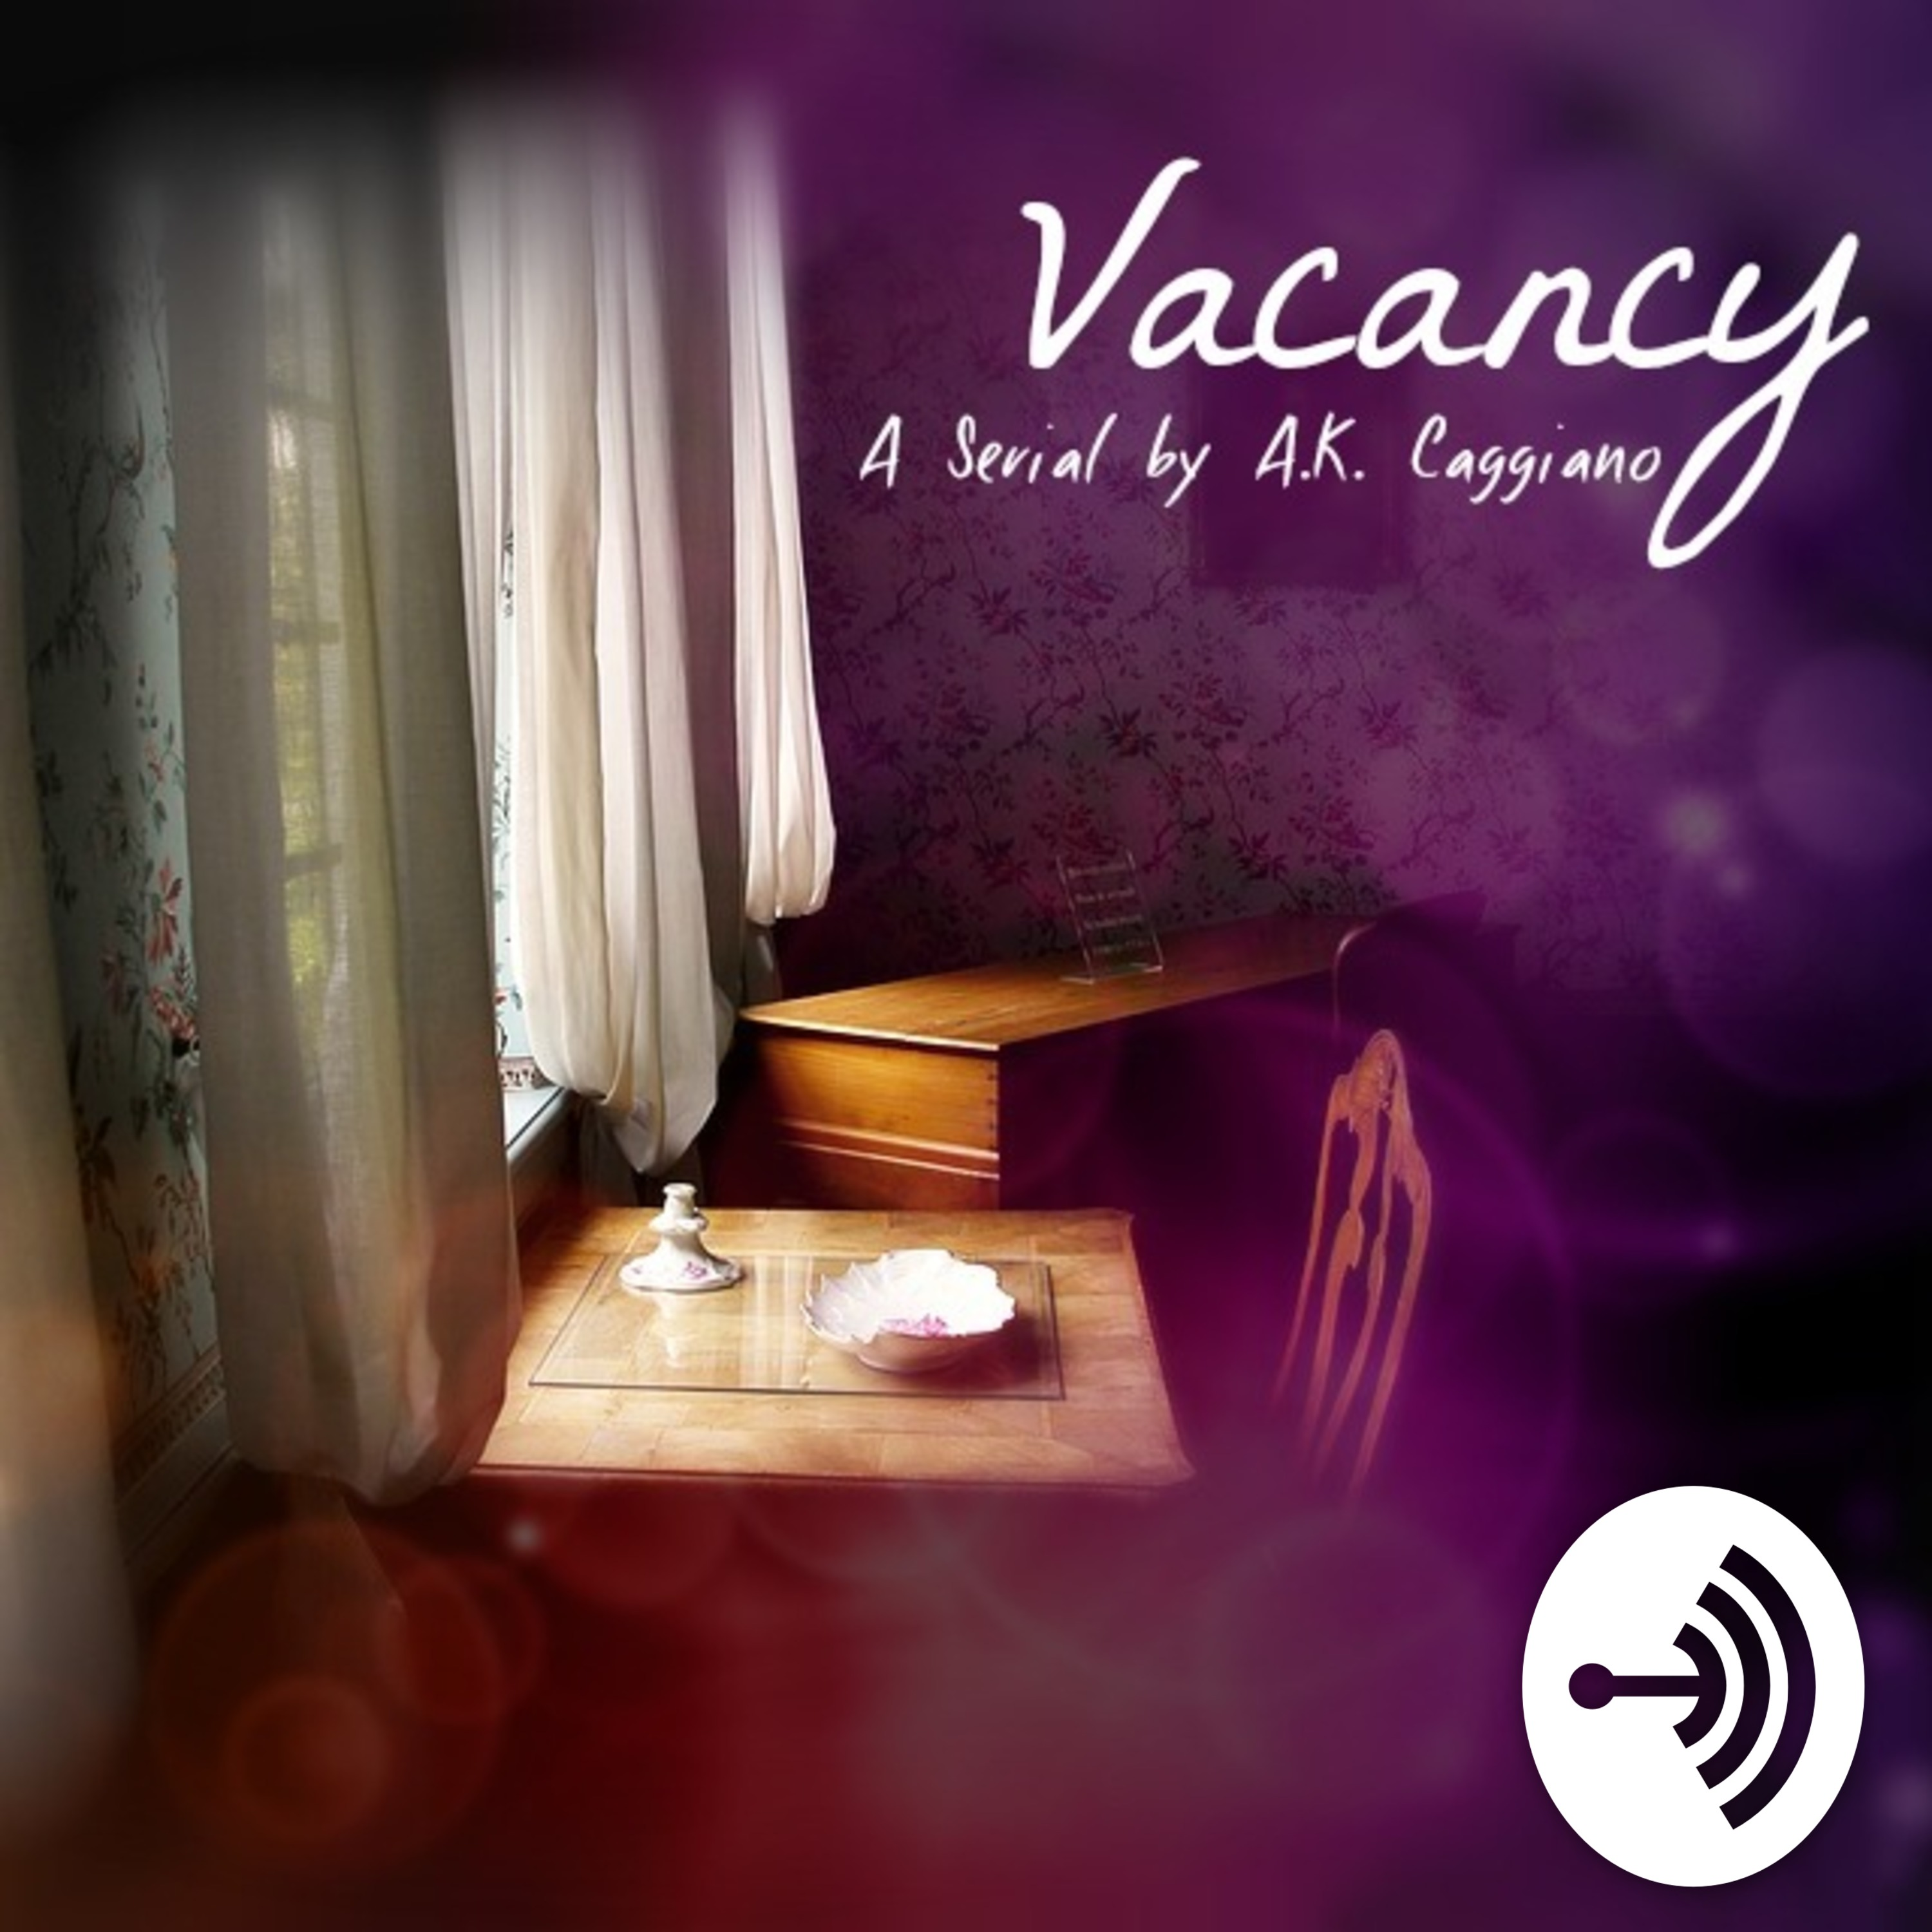 Vacancy Episode 1.17 - What They Were Looking For